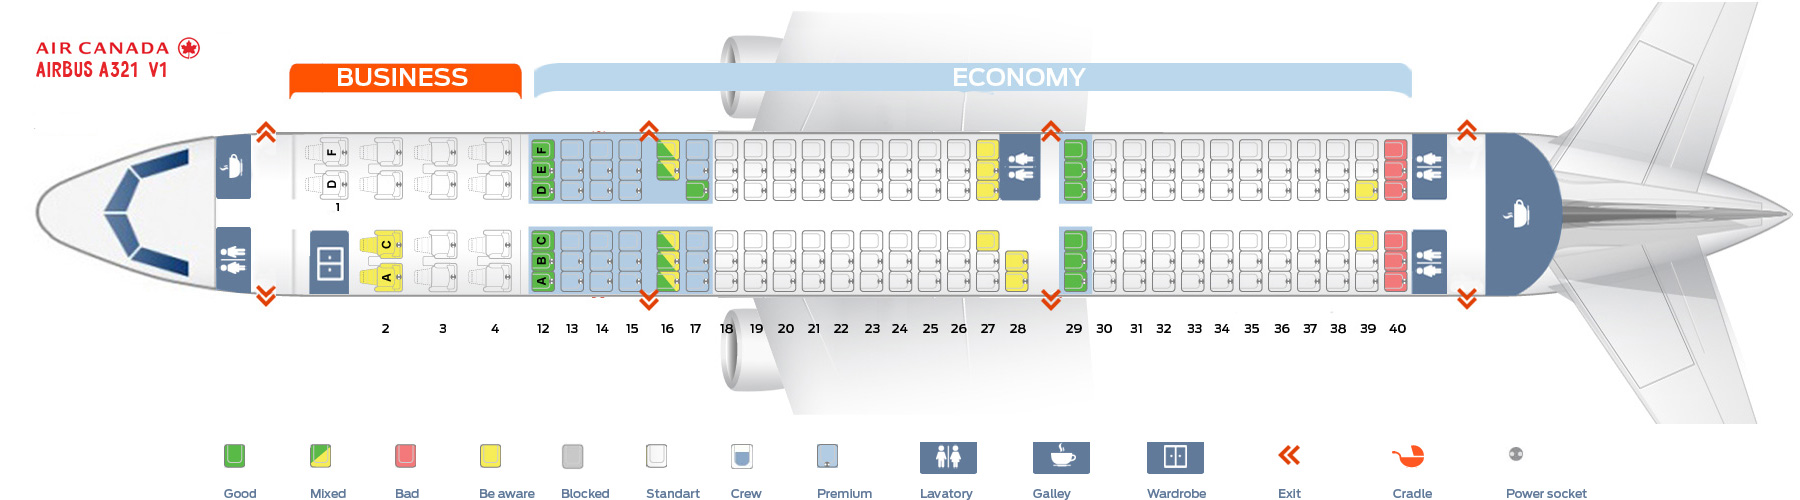 Air Canada 321 Seat Map Seat map Airbus A321 200 Air Canada. Best seats in plane